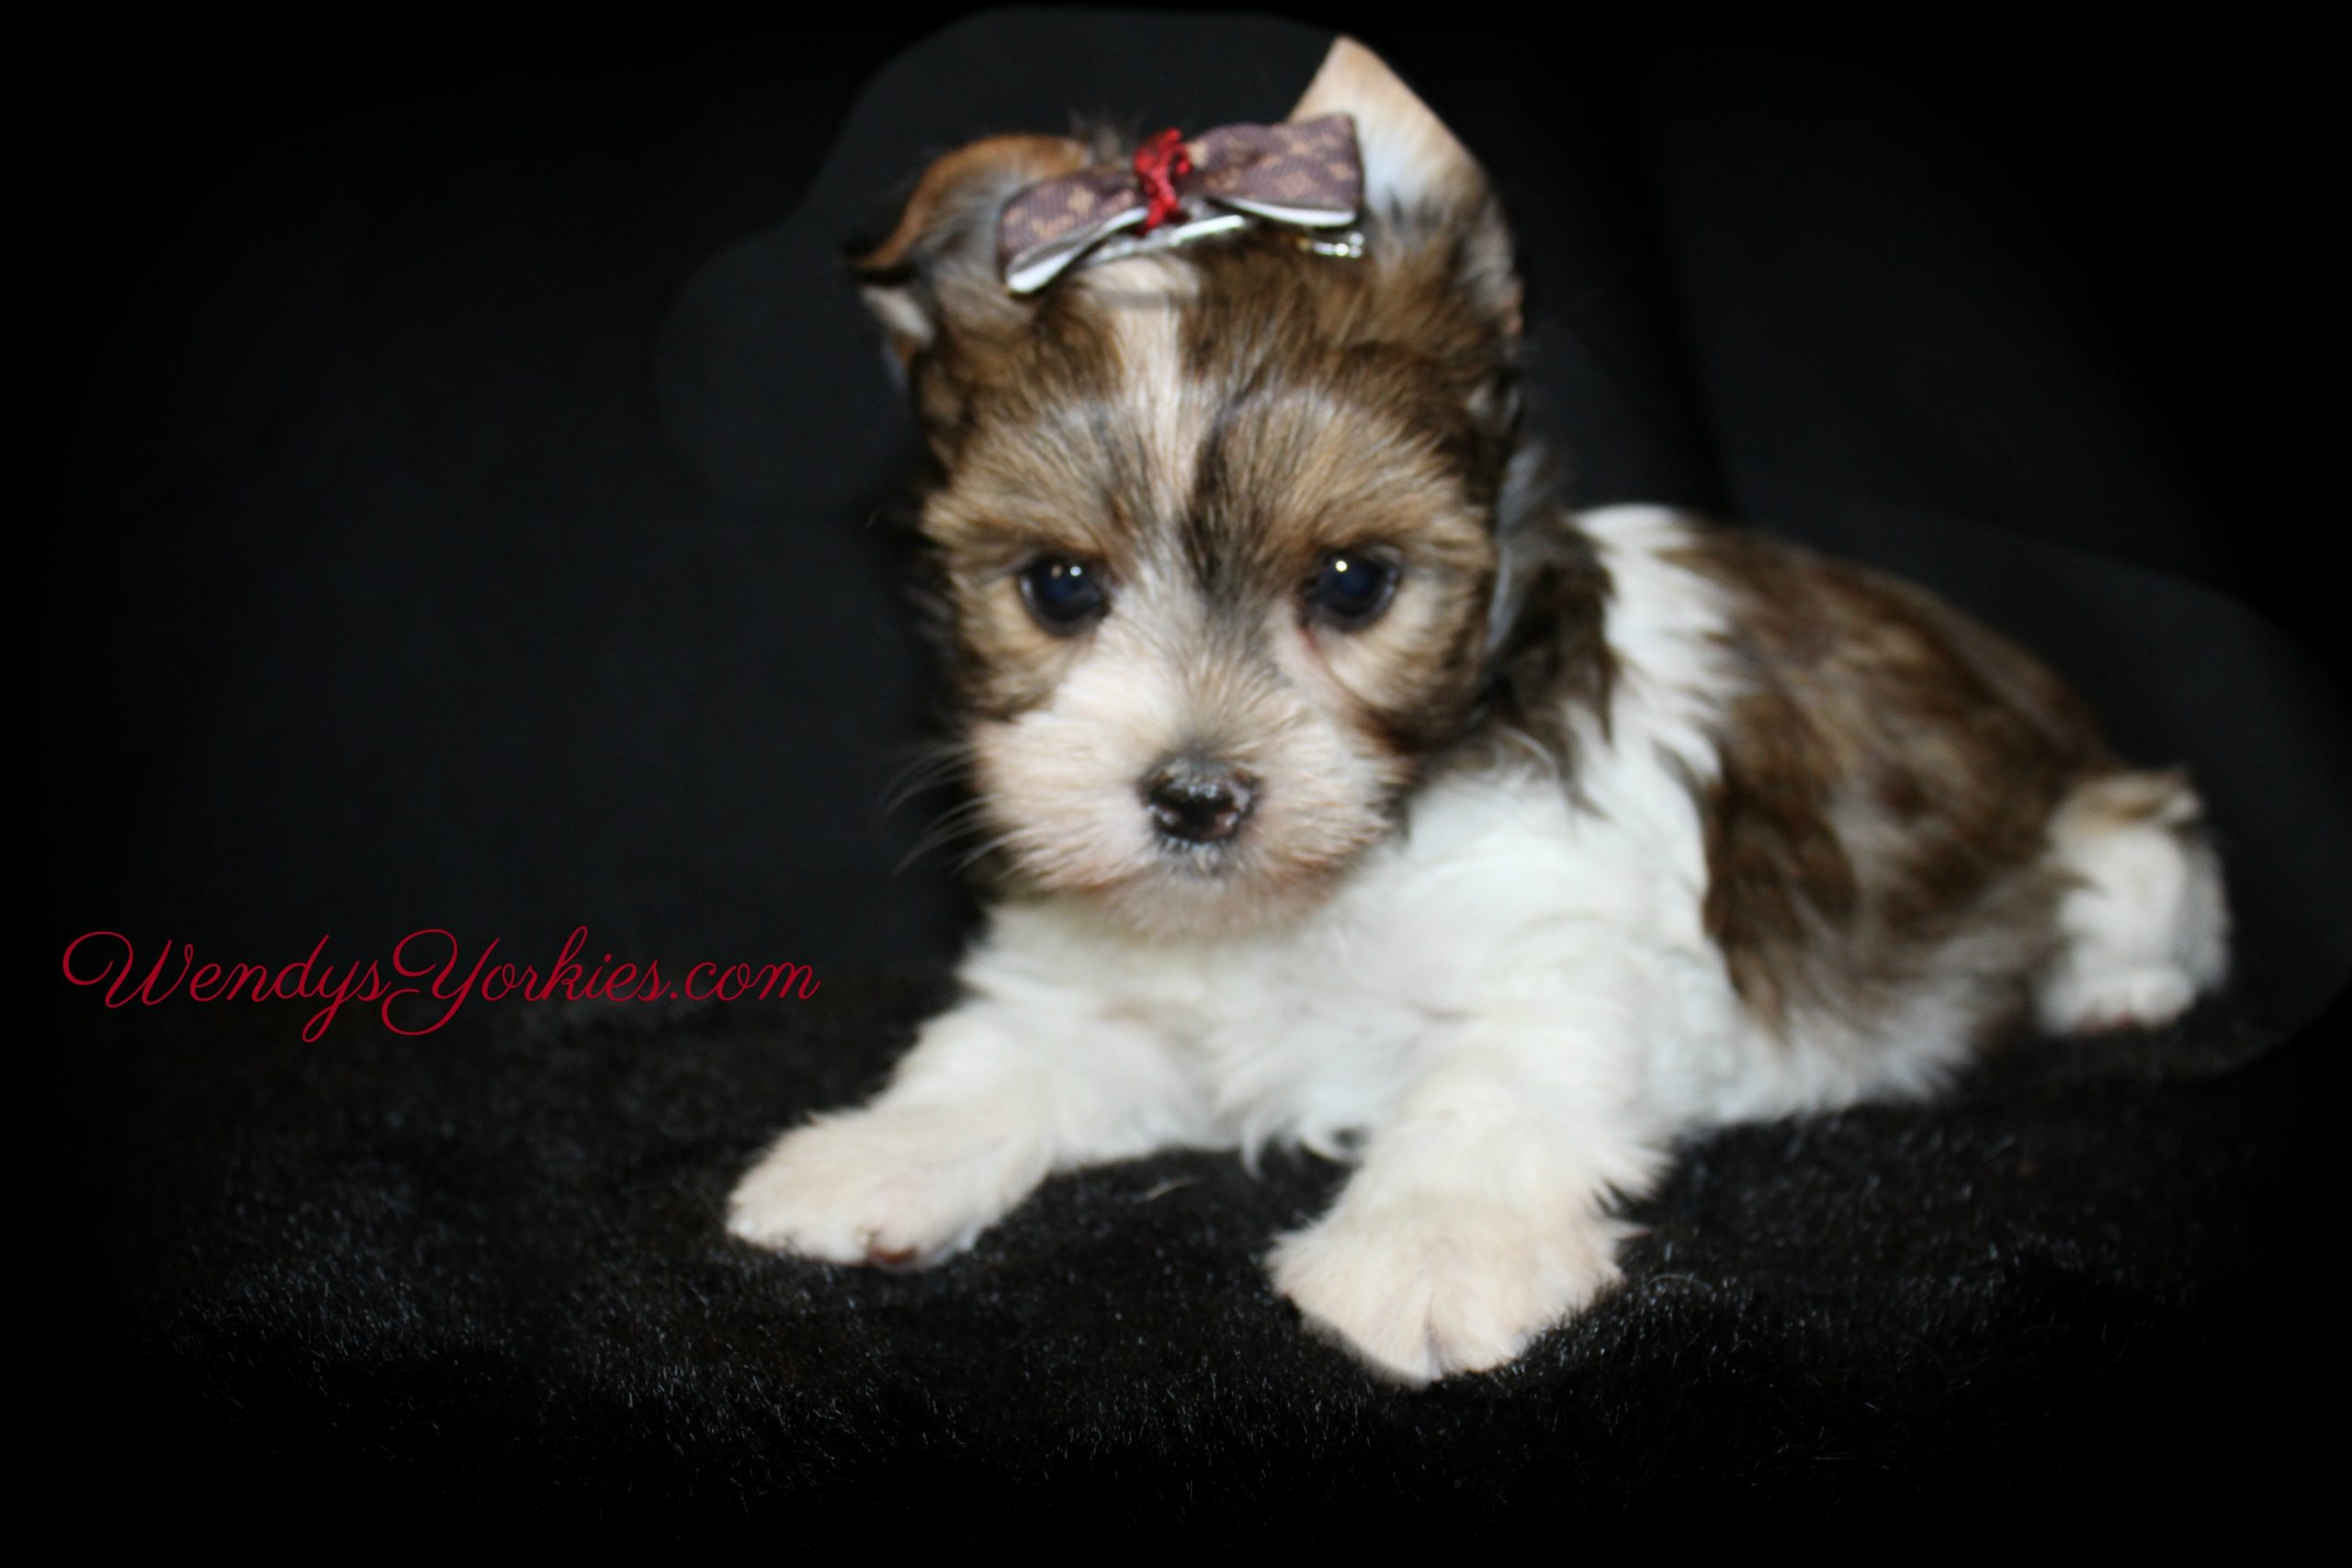 Parti Yorkie puppy for sale in Texas, Phoebe m1, WendysYorkies.com